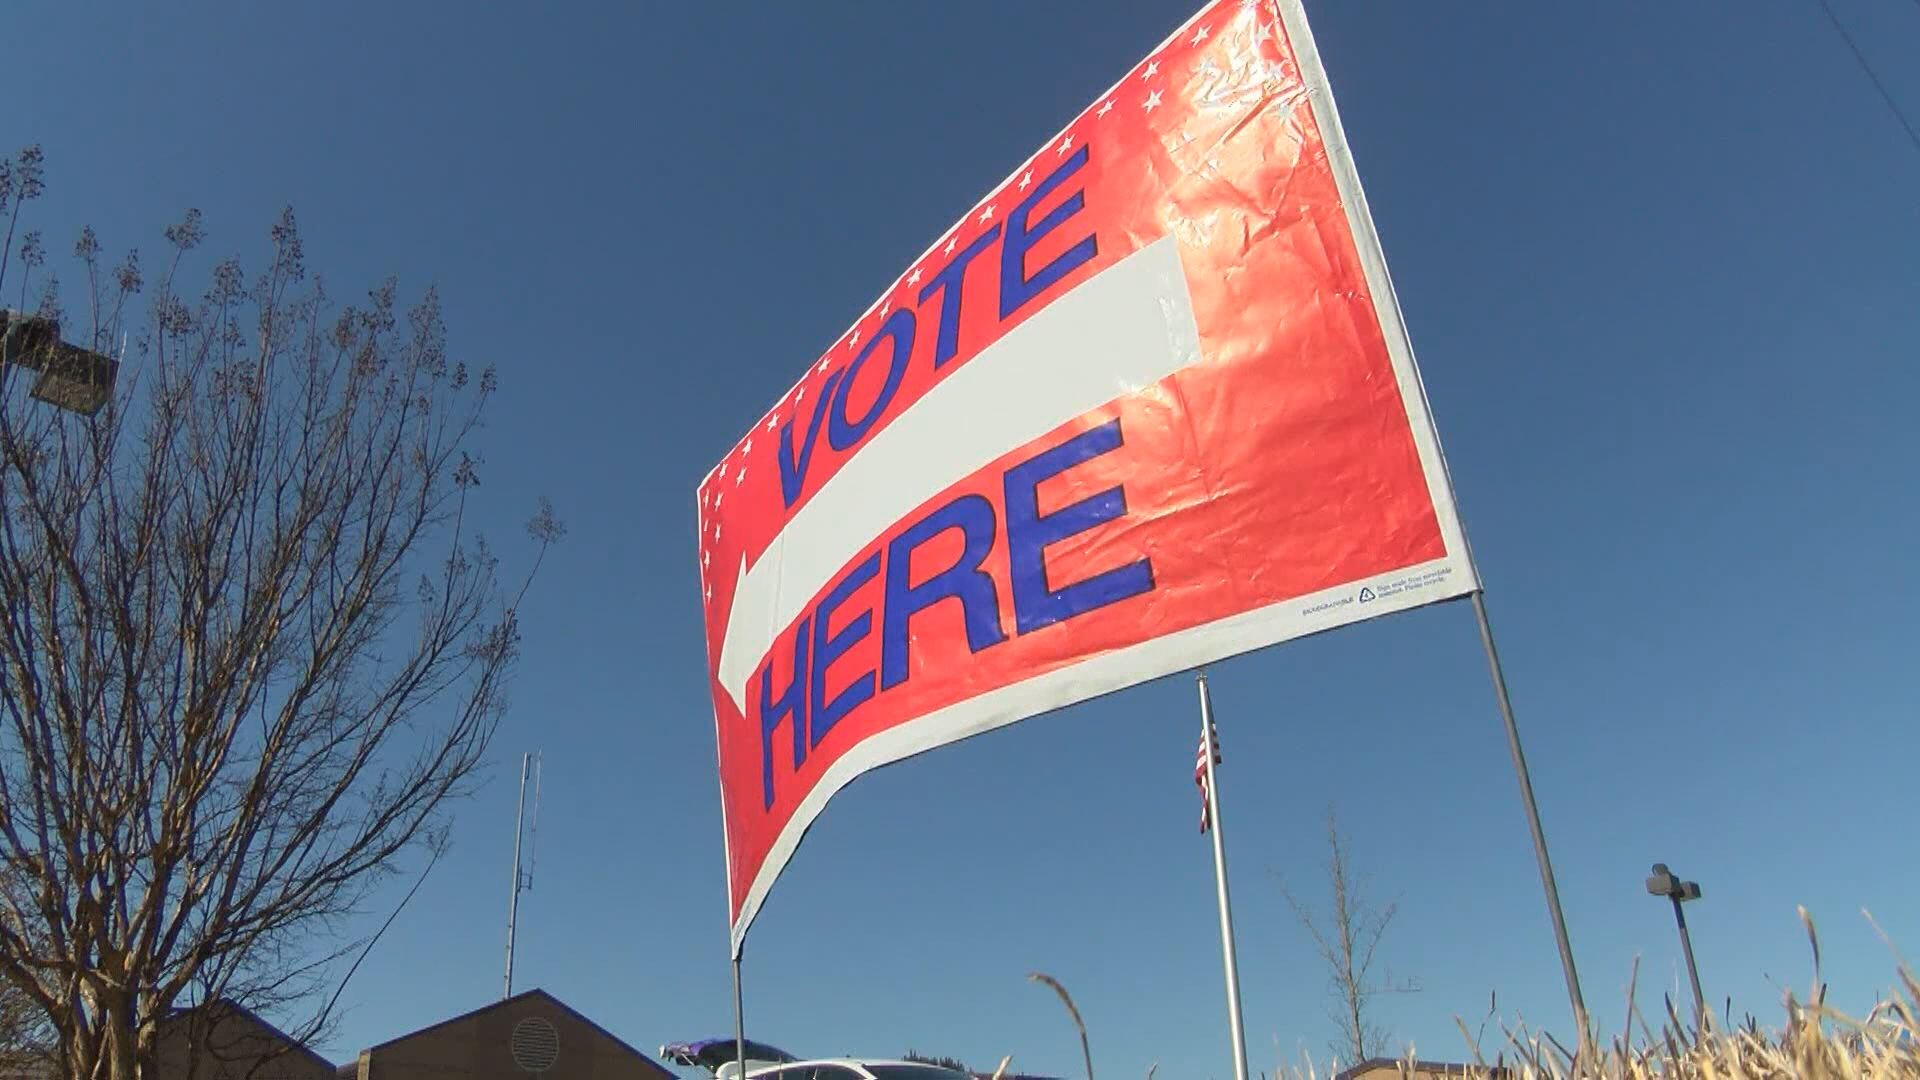 New early voting decision in Pitt County sparks concerns